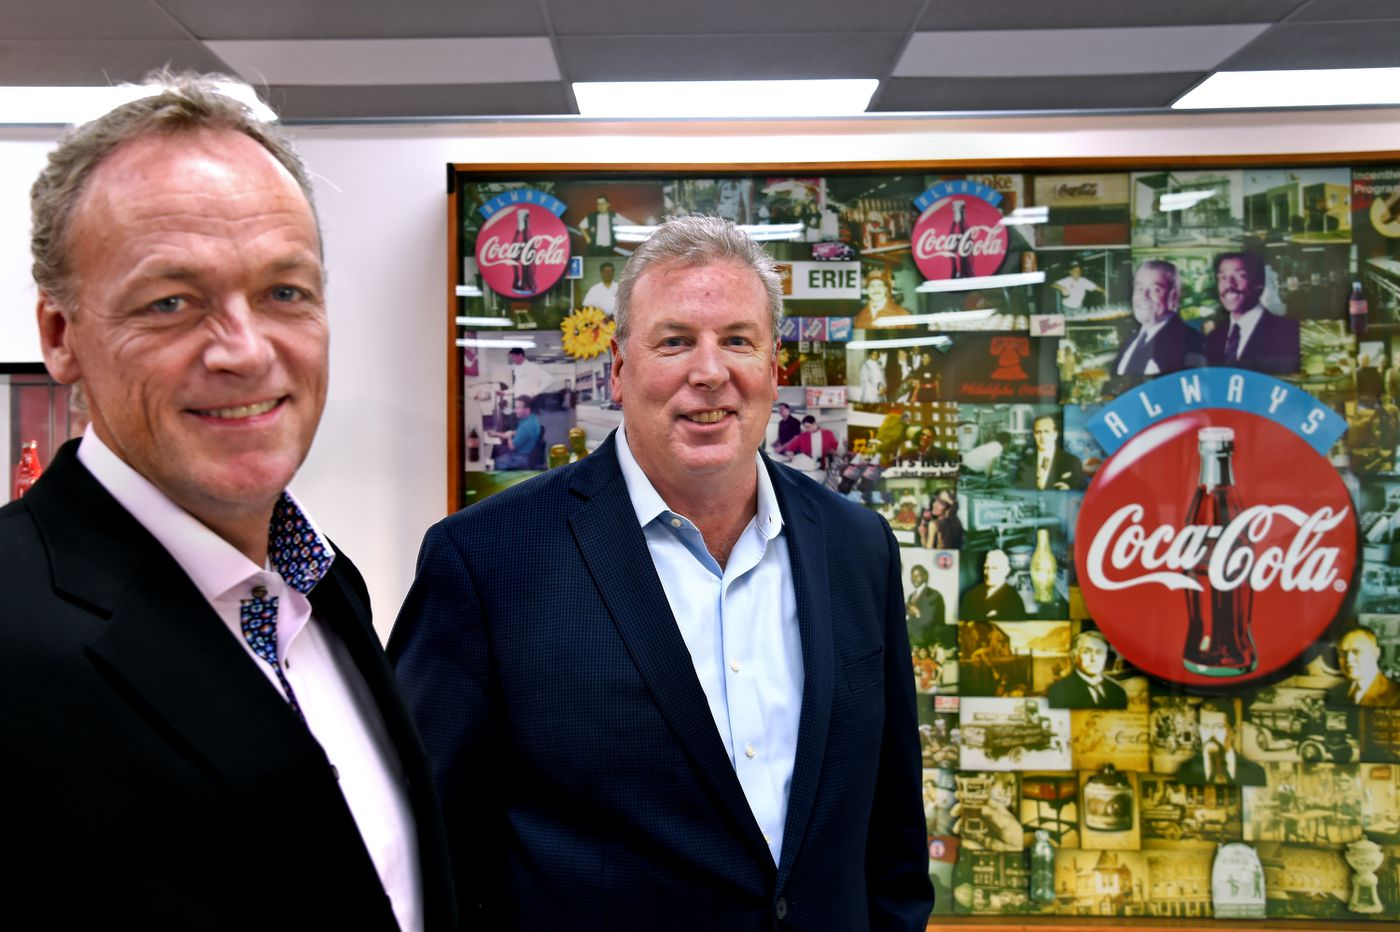 Liberty Coca-Cola bottling execs talk soda, taxes, and tea, and how to make their messages resonate in Philly